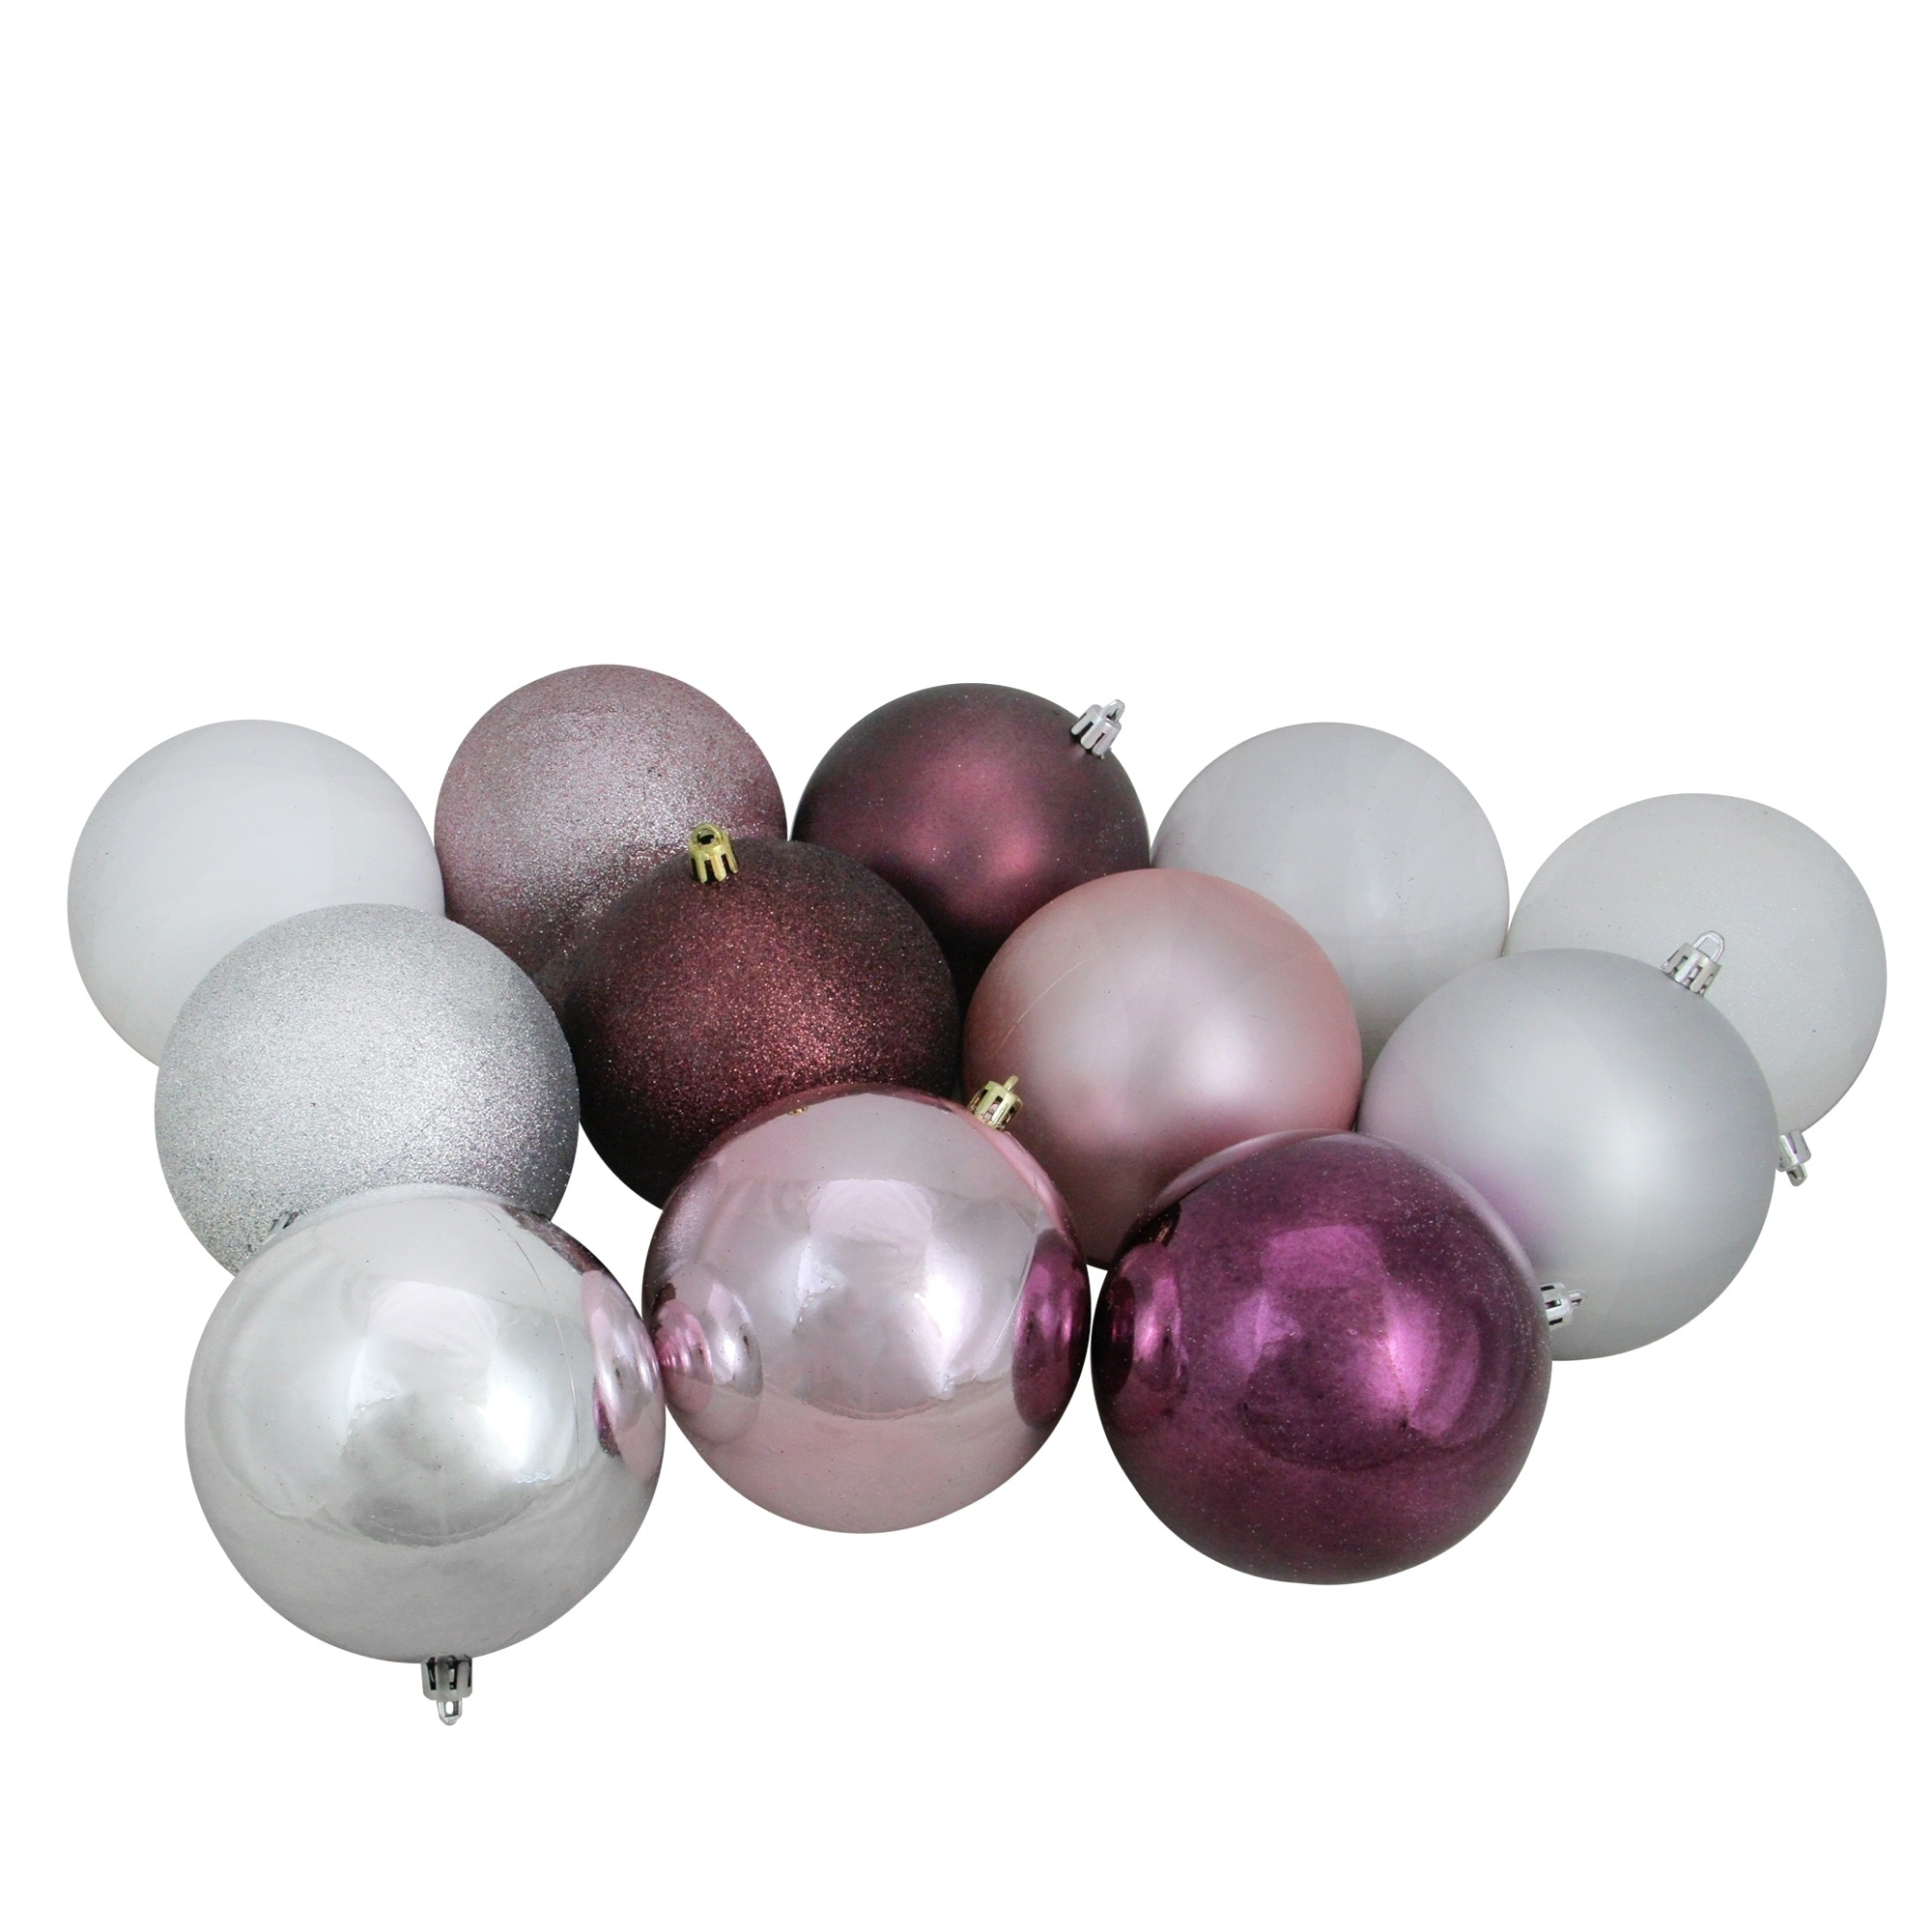 12ct Blush Pink Mulberry Silver White Shatterproof Christmas Ball Ornaments 4 Multi Plastic Christmas Balls Christmas Ornament Sets Ball Ornaments